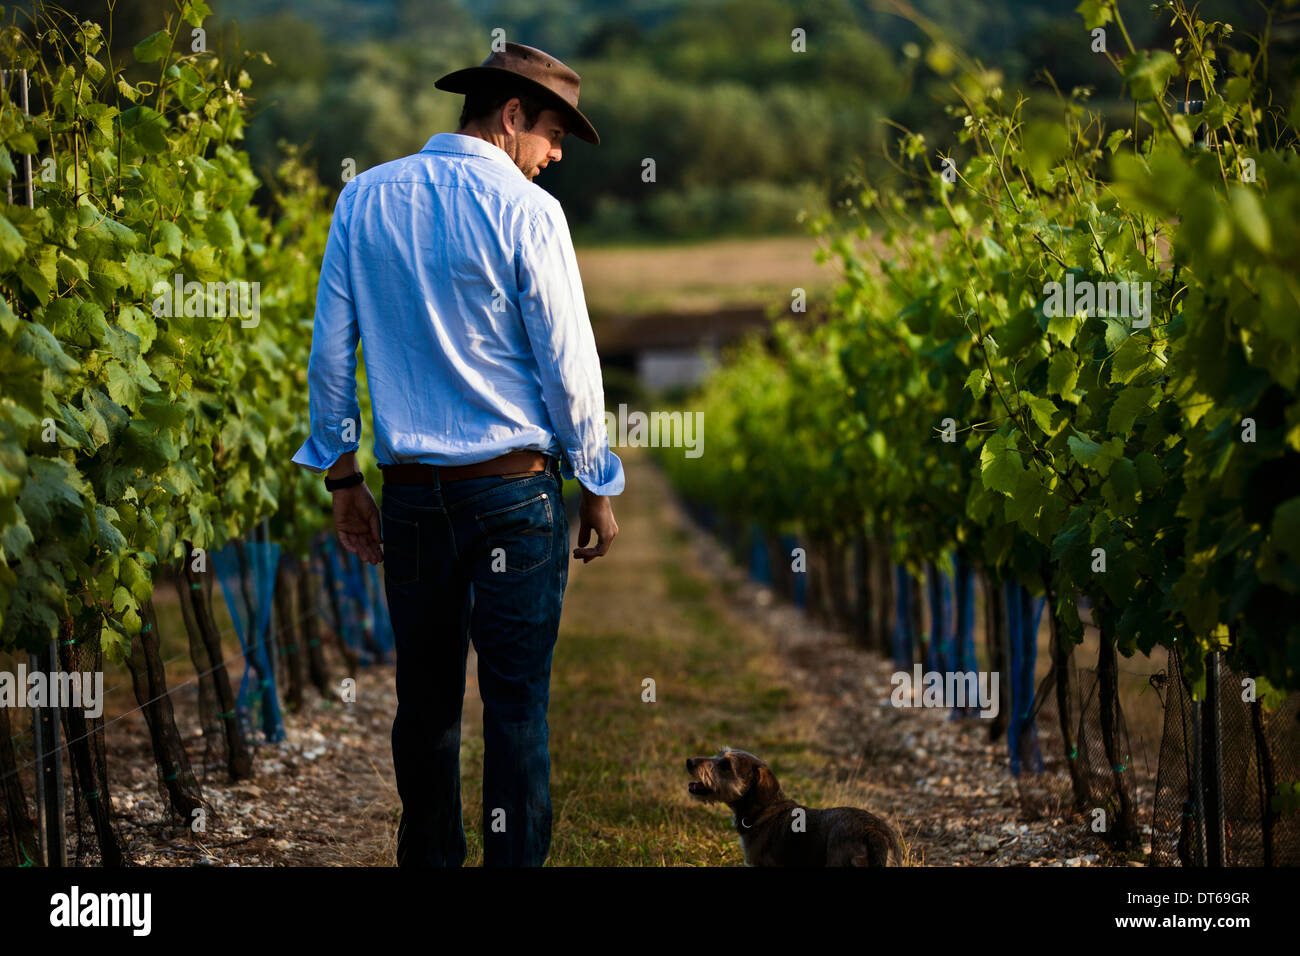 Mid adult man and dog monitoring wine and champagne vines, Cottonworth, Hampshire, UK - Stock Image